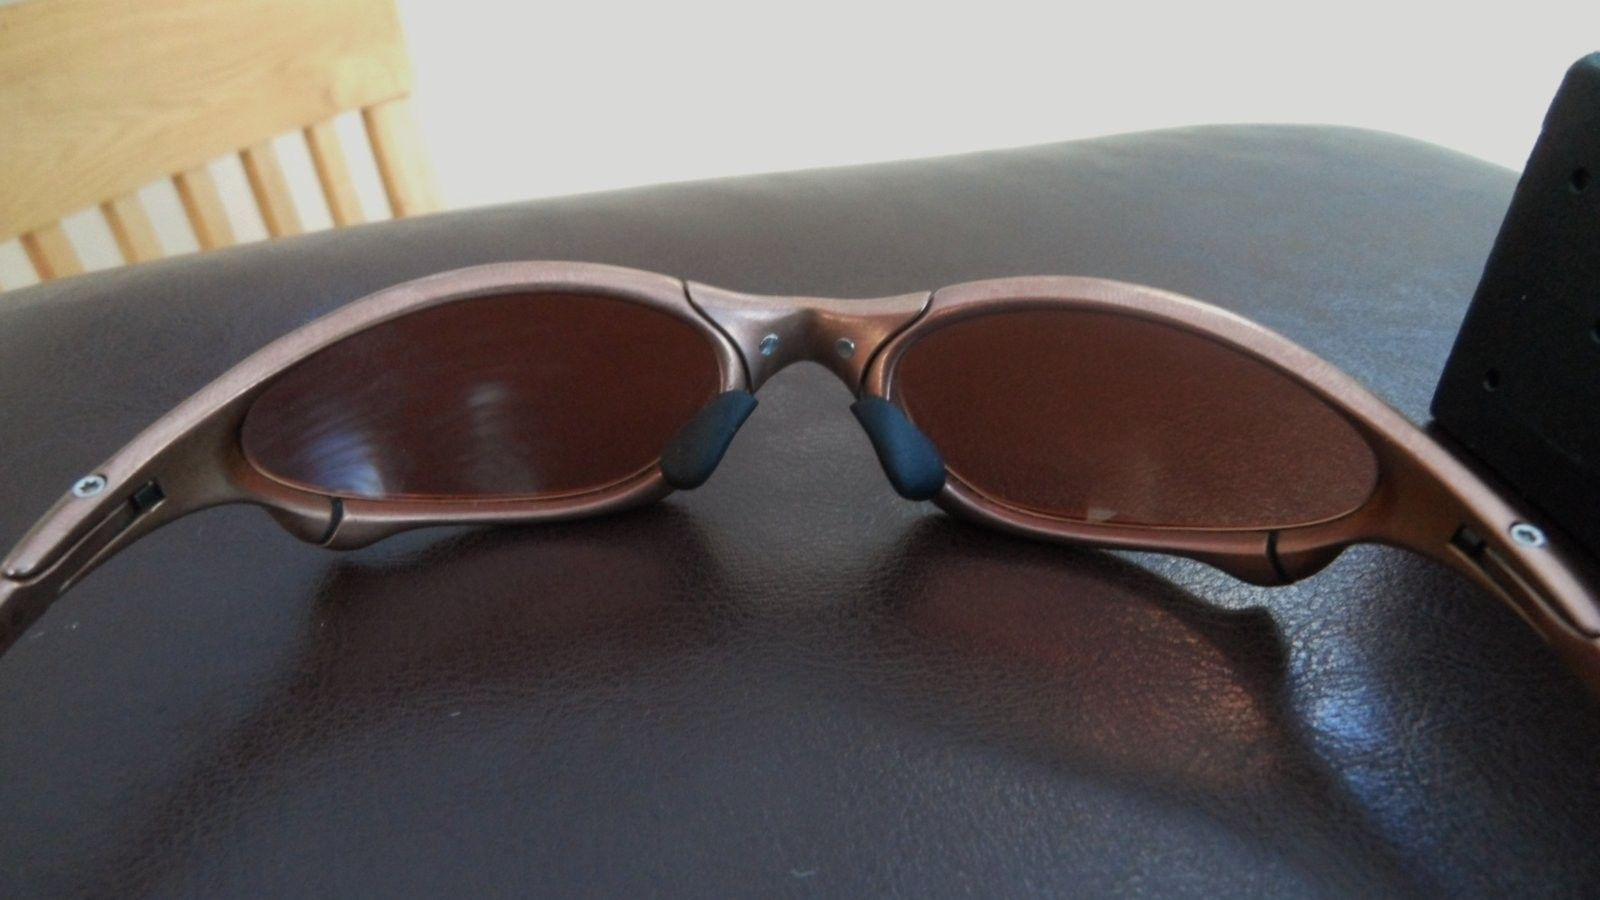 Penny Copper with VR28 lenses. Correctly Labelled Box but wrong serial. - SAM_0006.JPG